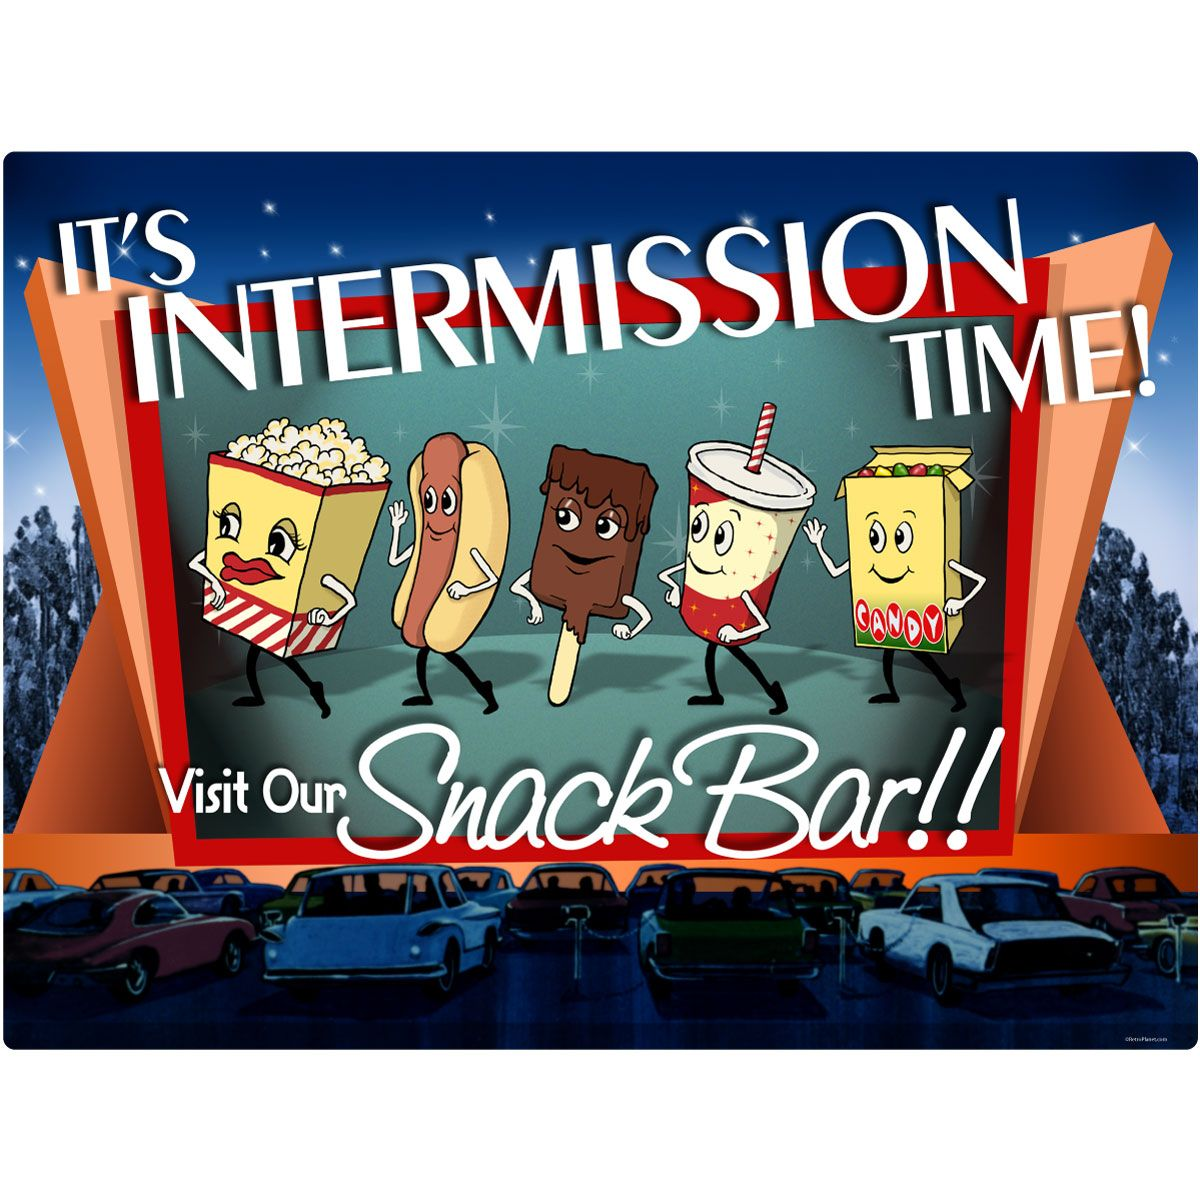 Theater Room Snack Bar: Intermission Time Snack Bar Wall Decal